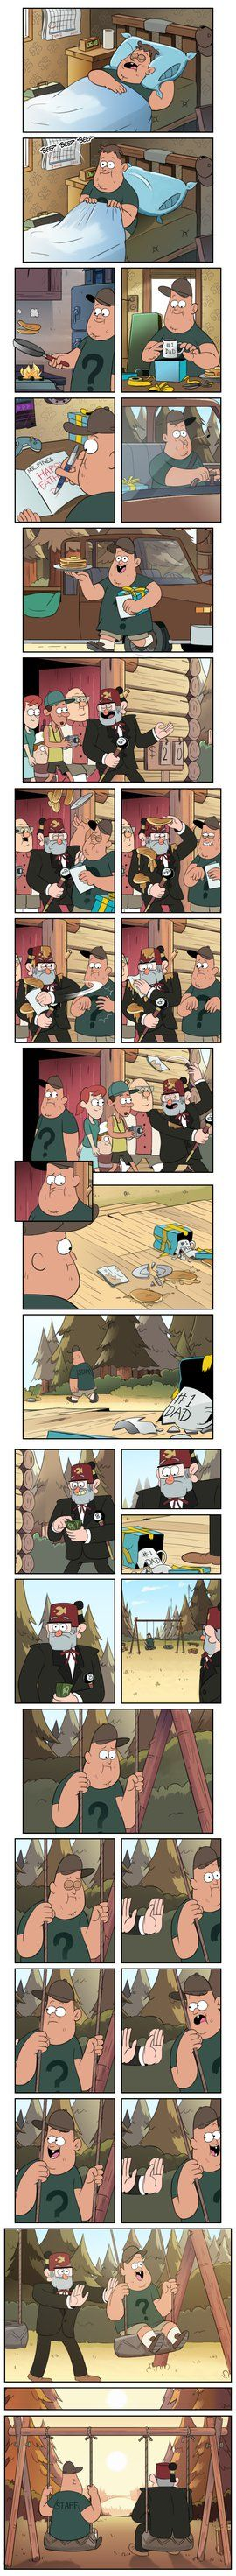 Happy Father's Day, Mr. Pines by markmak on DeviantArt